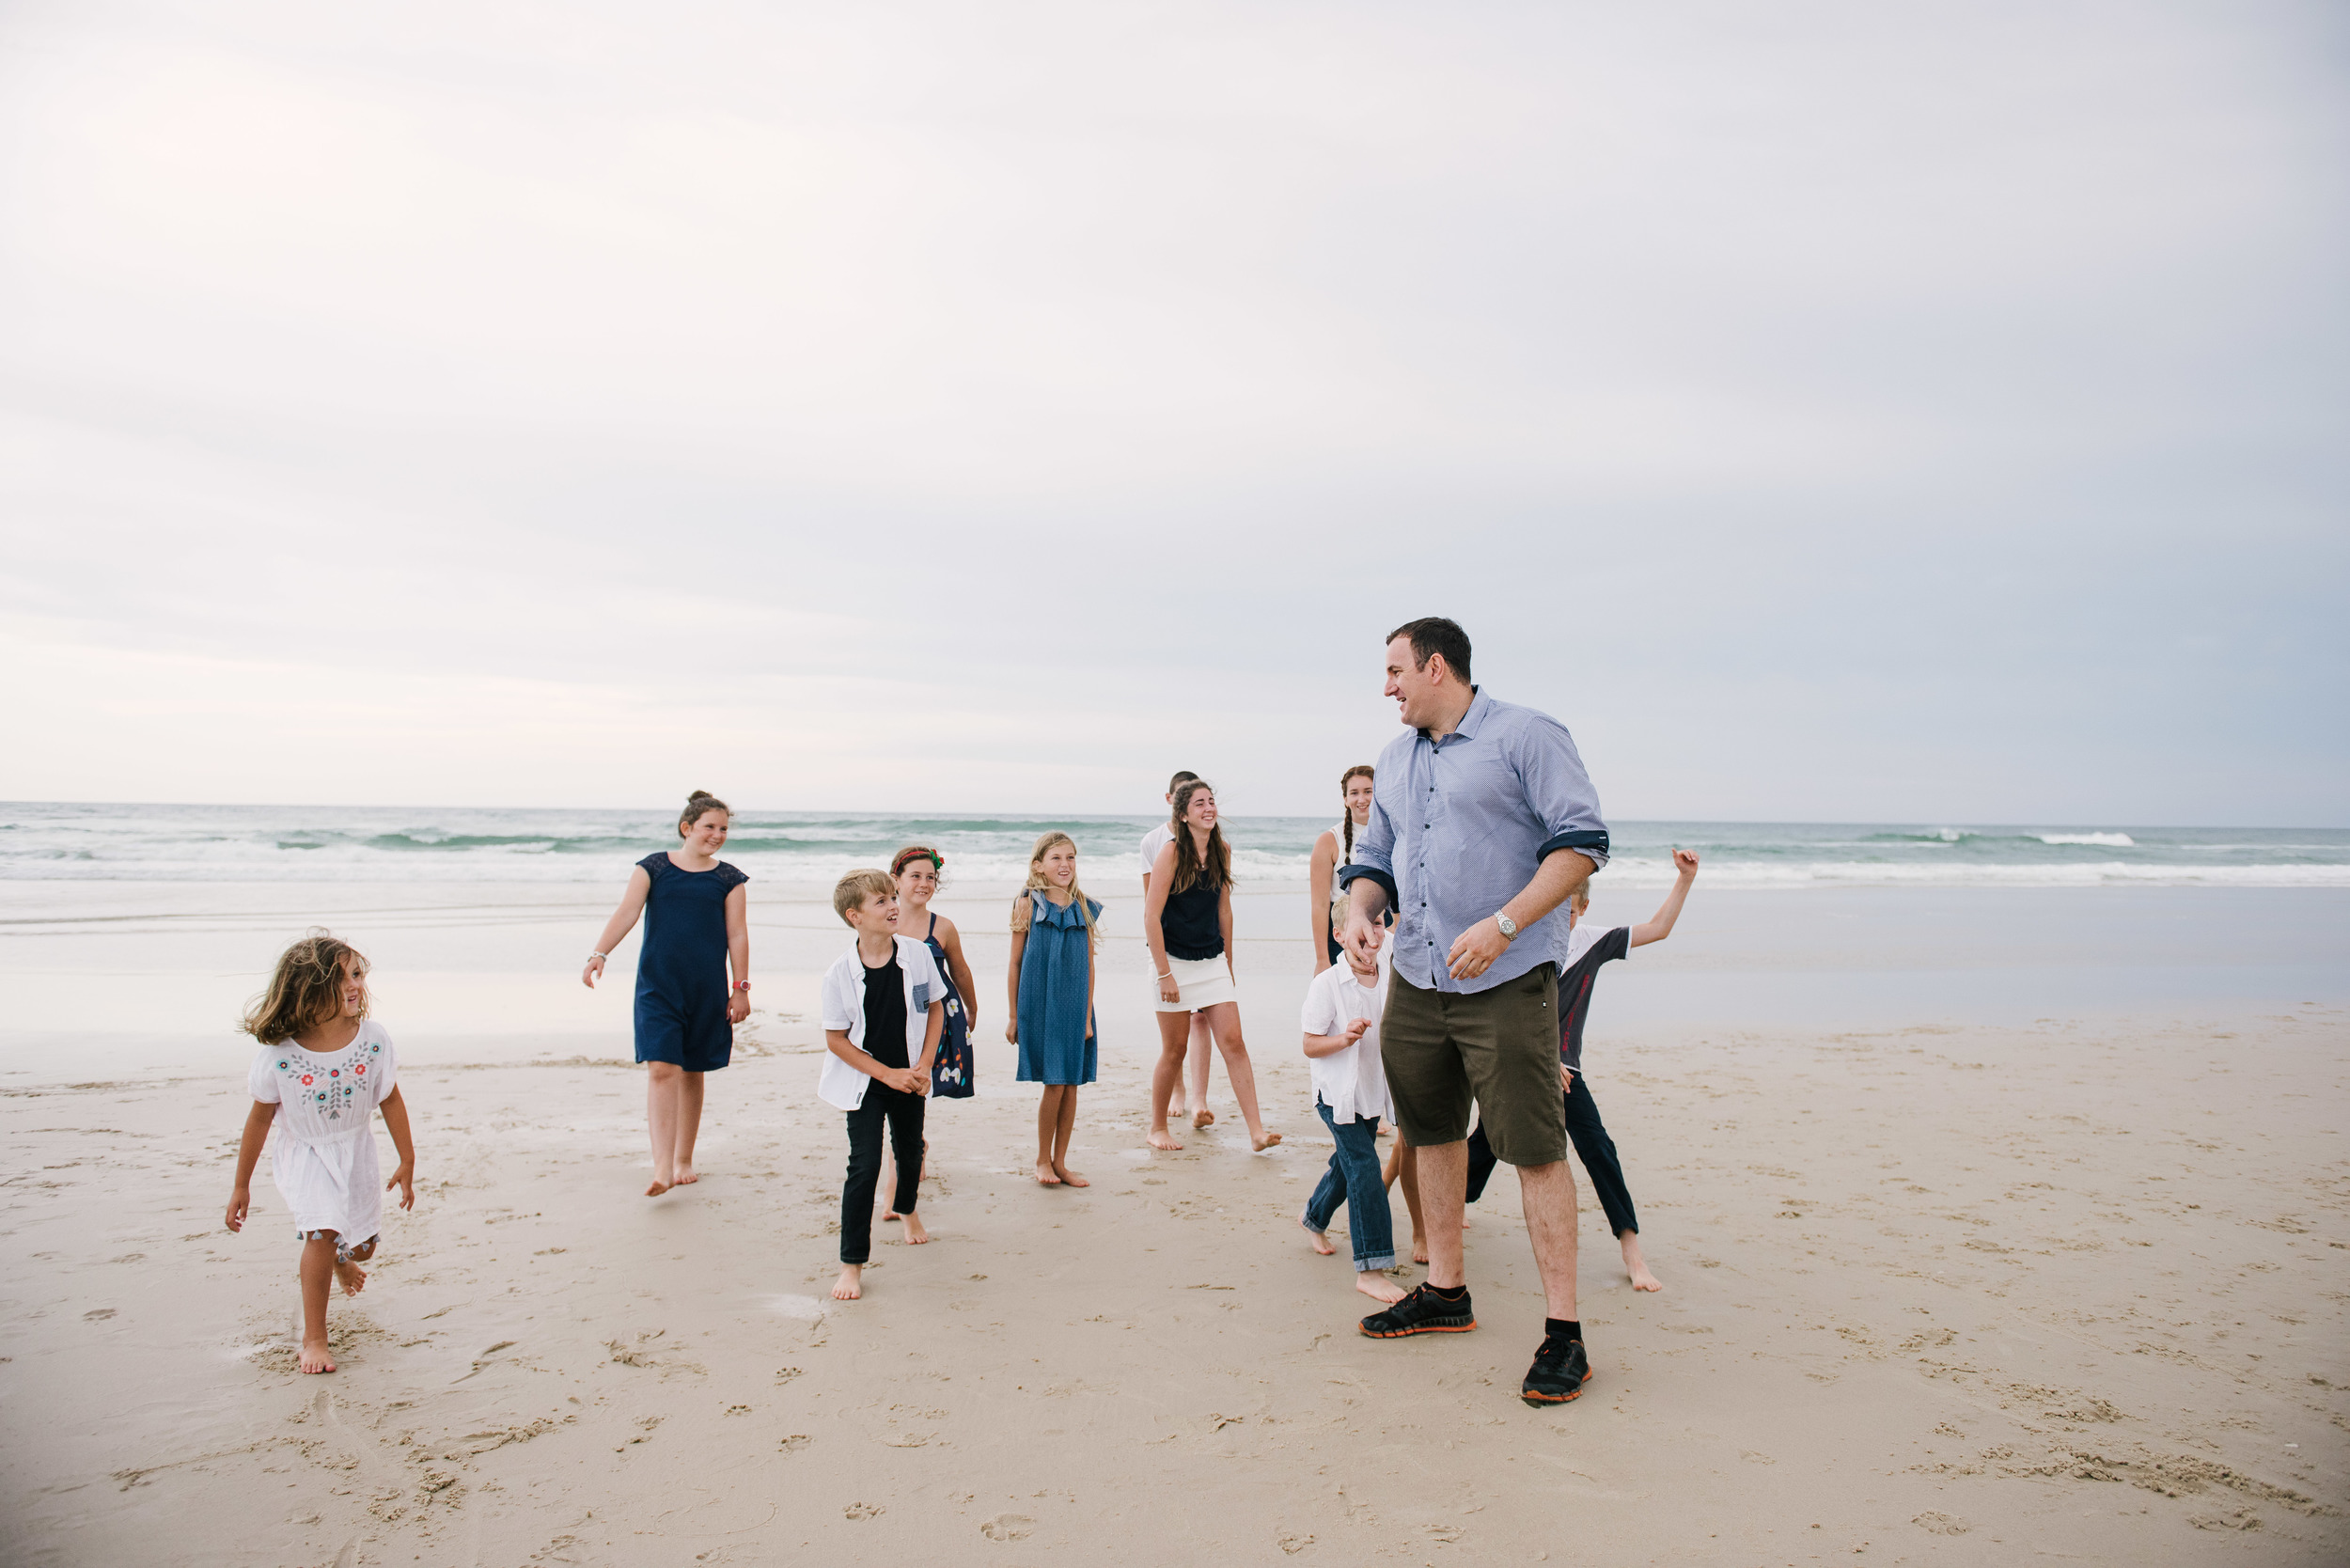 Ness family reunion-family-photography-wedding-photography-family-children-goldcoast-northernNSW-73.jpg